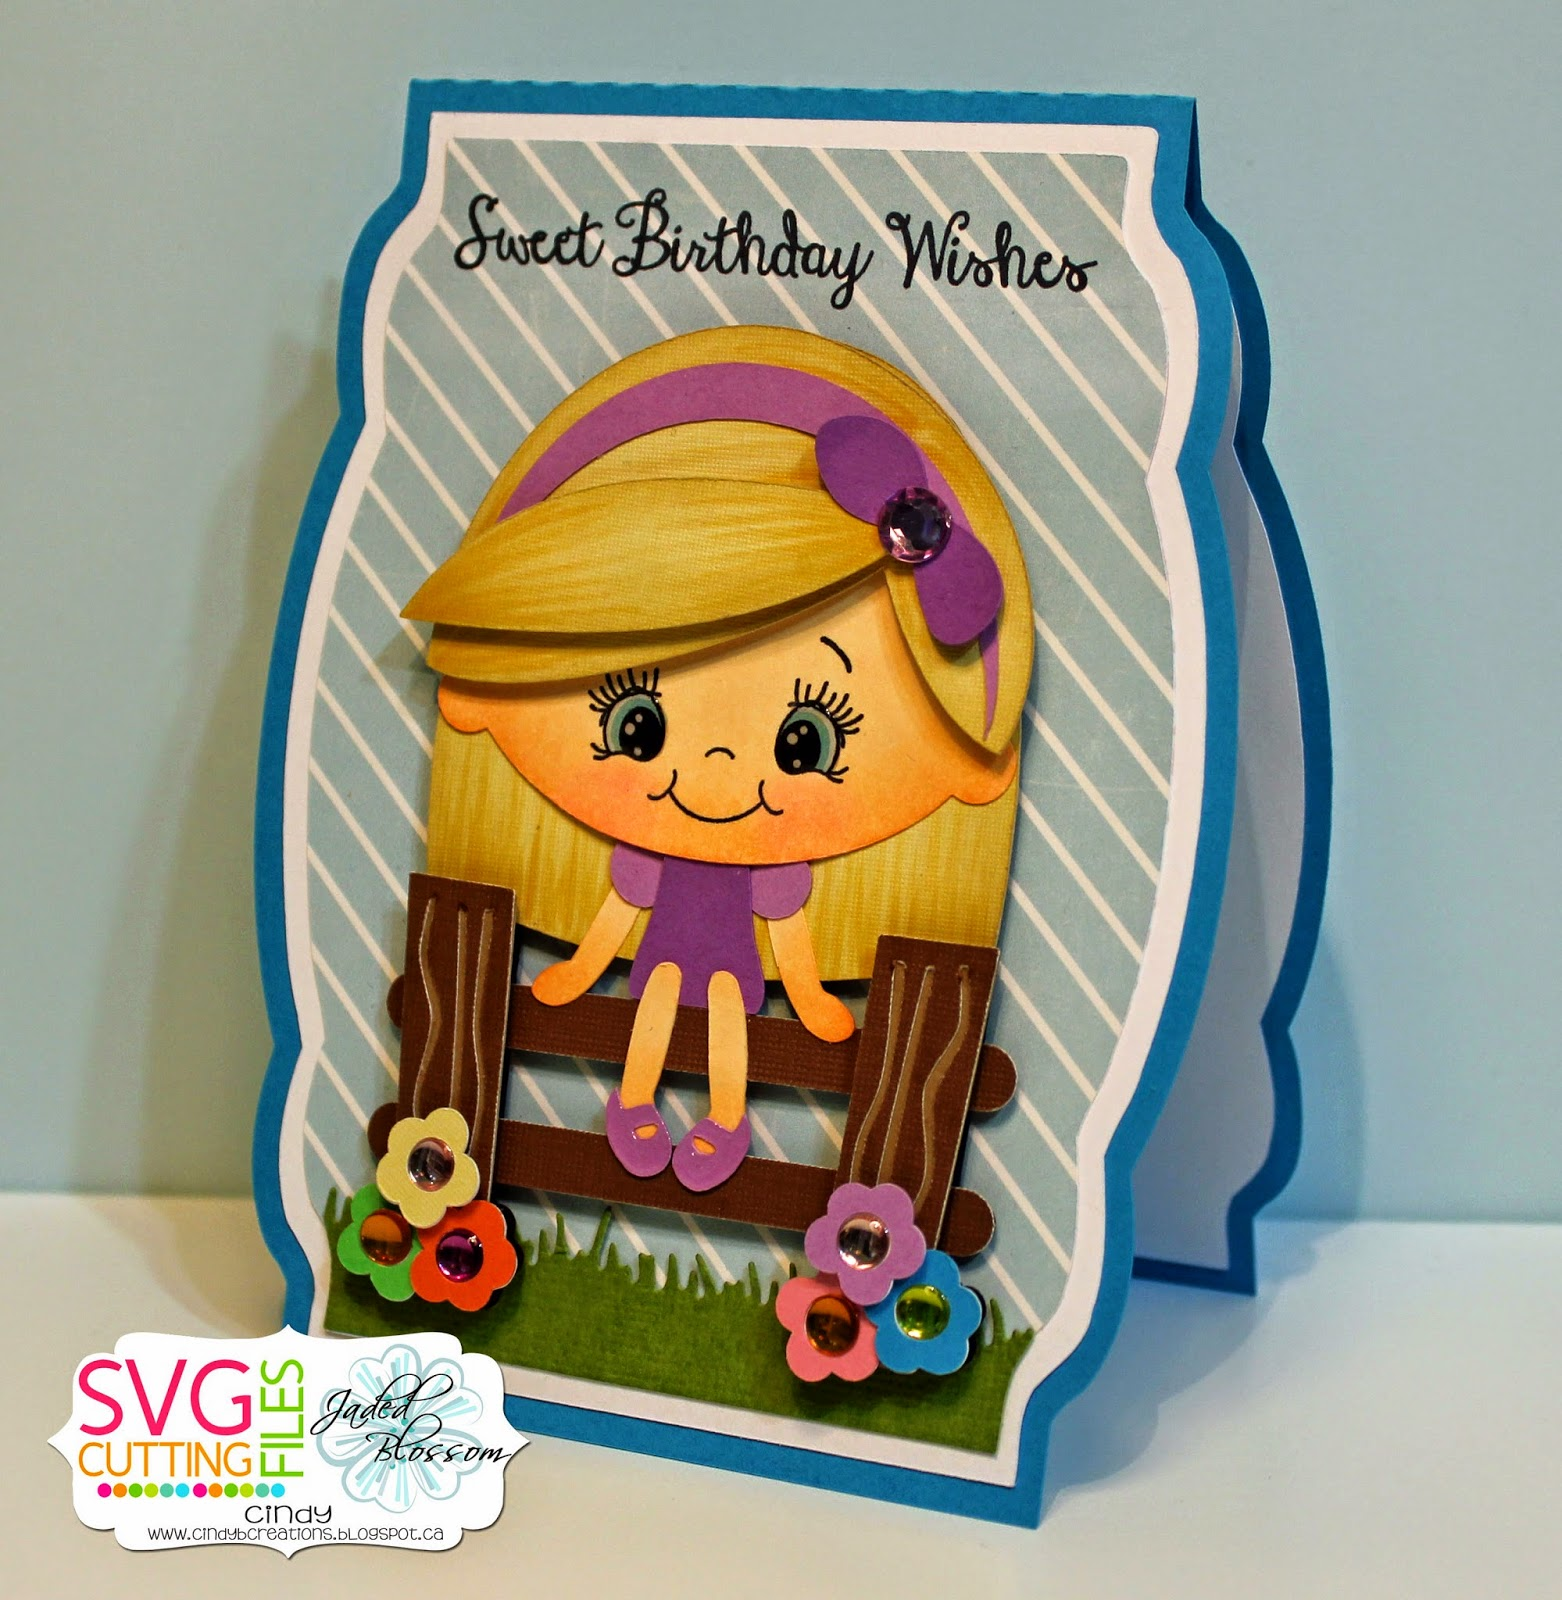 SVG Cutting Files: Sweet Birthday Wishes